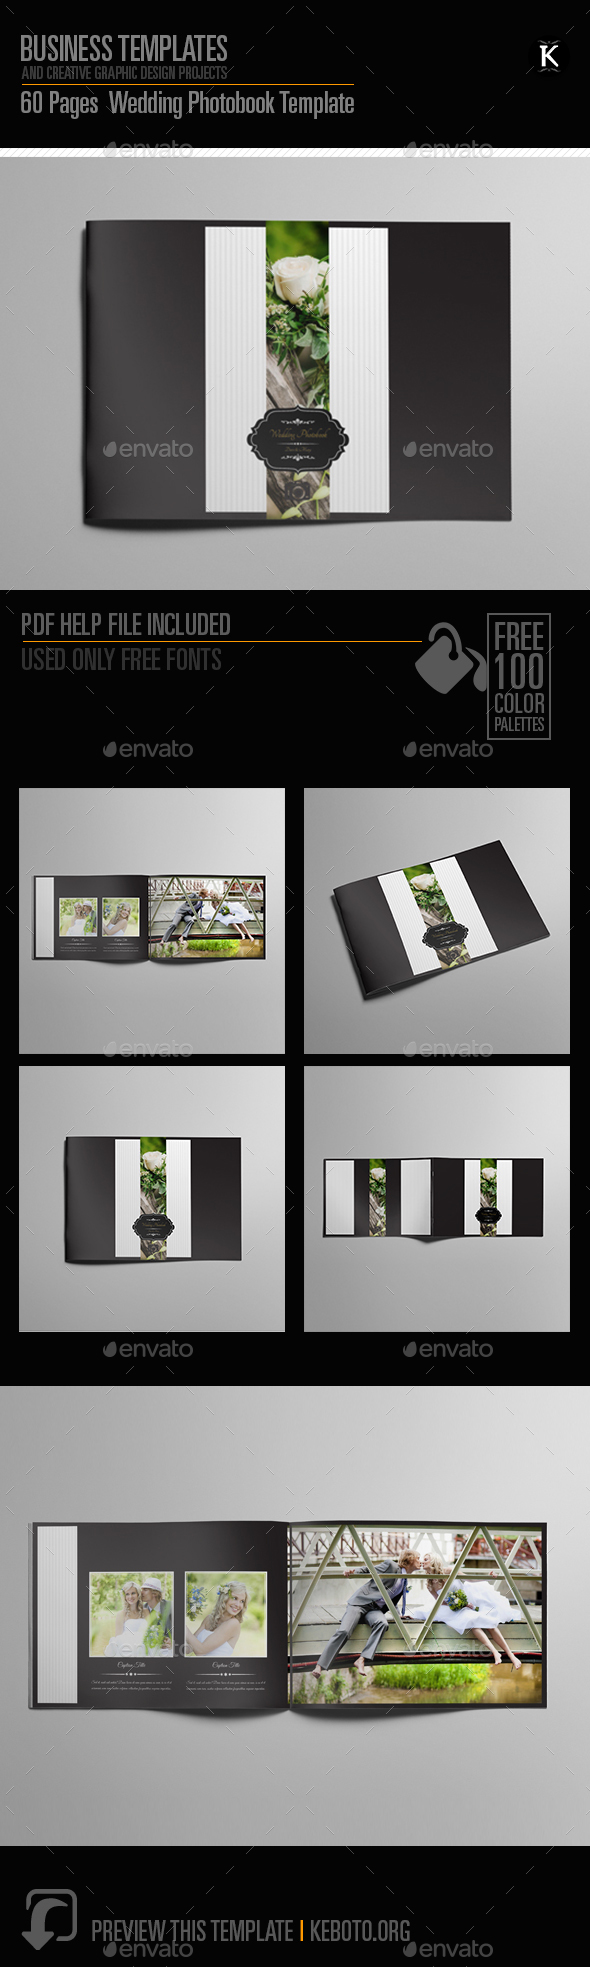 60 pages wedding photobook template by keboto graphicriver. Black Bedroom Furniture Sets. Home Design Ideas